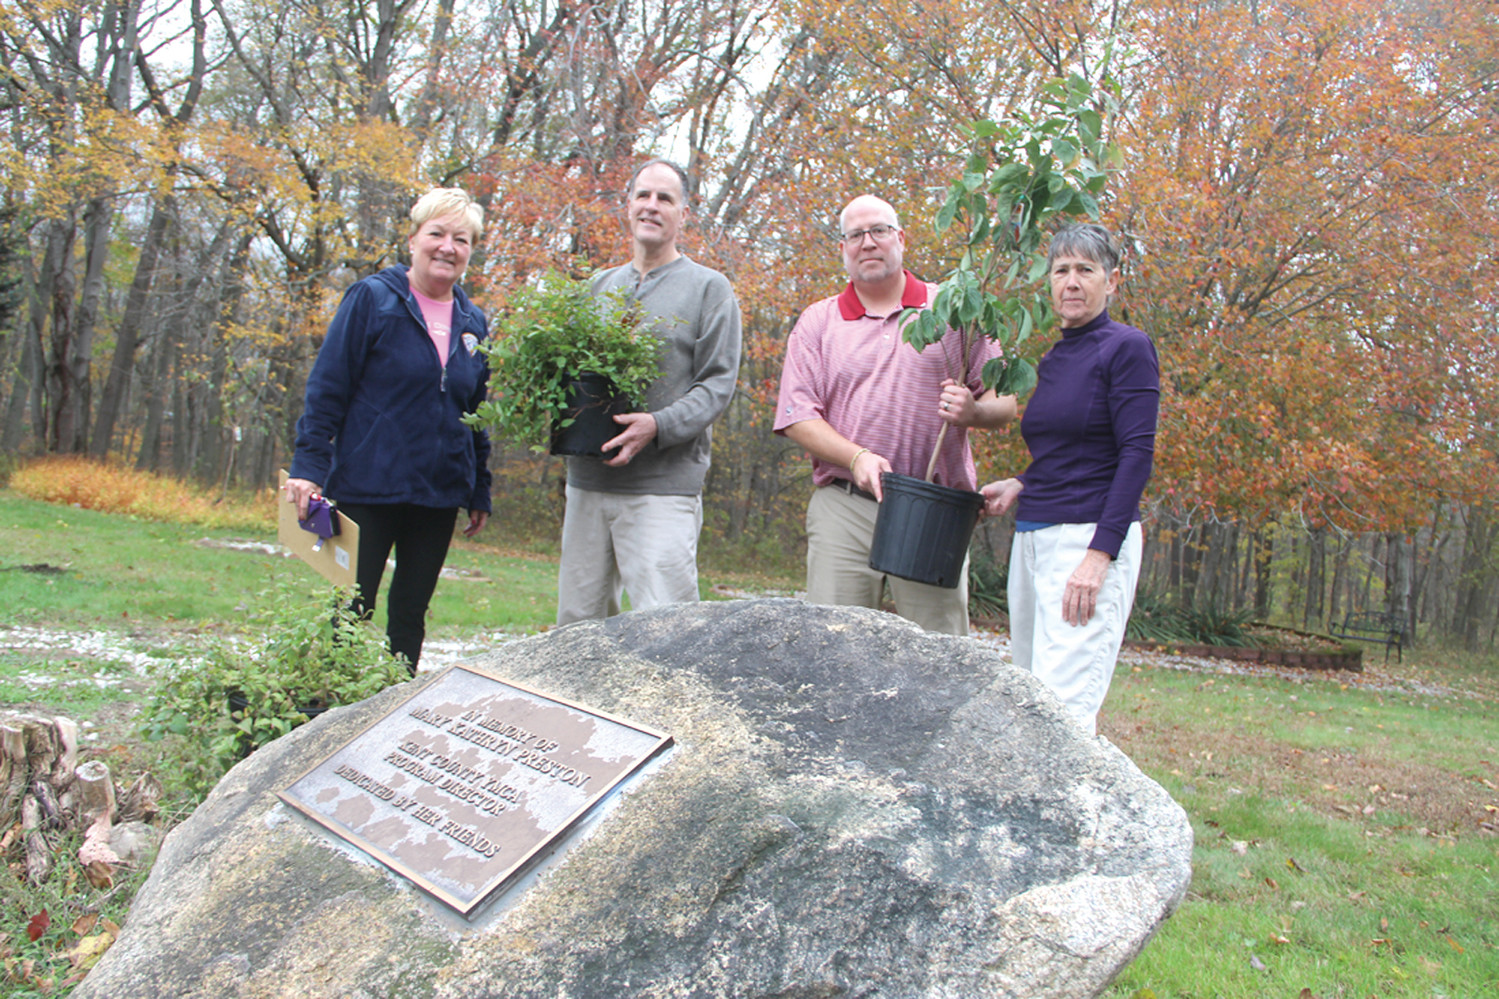 REMEMBERING TWO MARYS: Thanks to the donations of plants and shrubs from Laura LaBossiere, several sections of the Kent County YMCA grounds including the Mary K. Preston memorial garden will have flowering dogwoods and shrubs. Pictured from left are Kent Y director Julie Casimiro, Christopher Bourque, Ian McDermott of the Y and Laura LaBossiere. As the garden was beautified, the group also remembered Mary's mother, Mary B. Preston, who died Nov. 3.